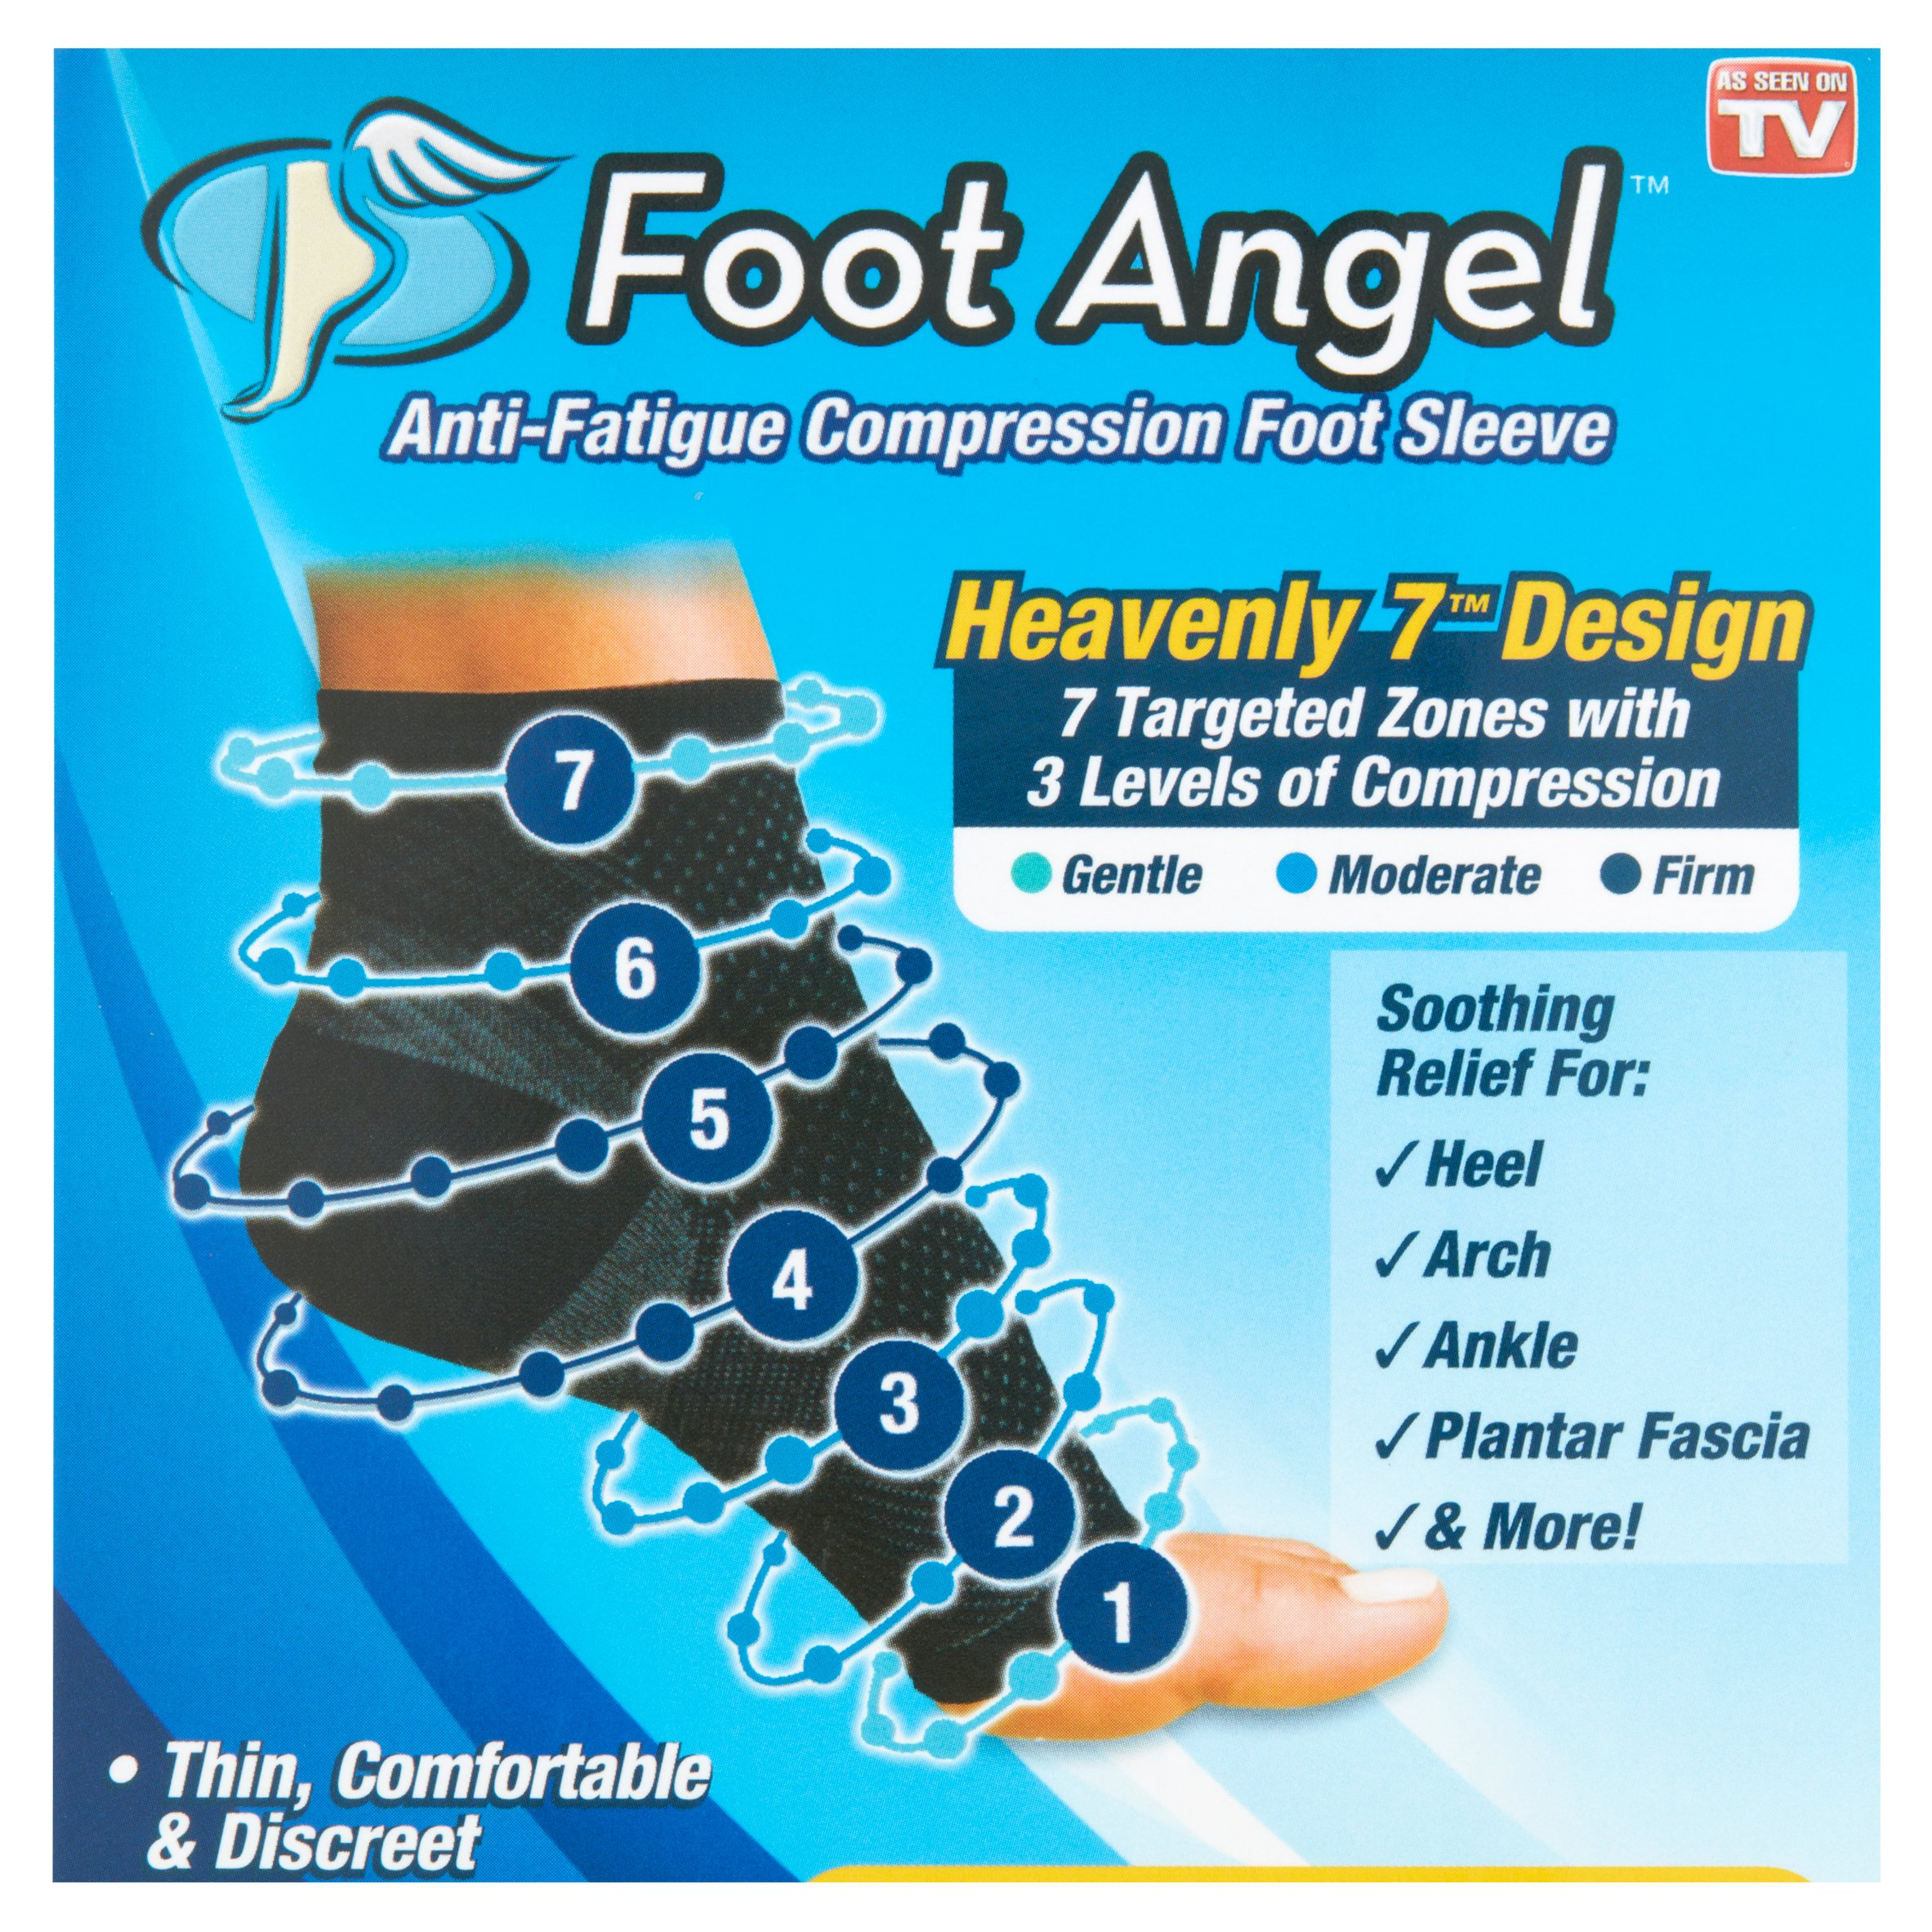 As Seen On TV Foot Angel SM Walmartcom - Lego creates anti lego slippers with extra padding to end a pain parents know too well